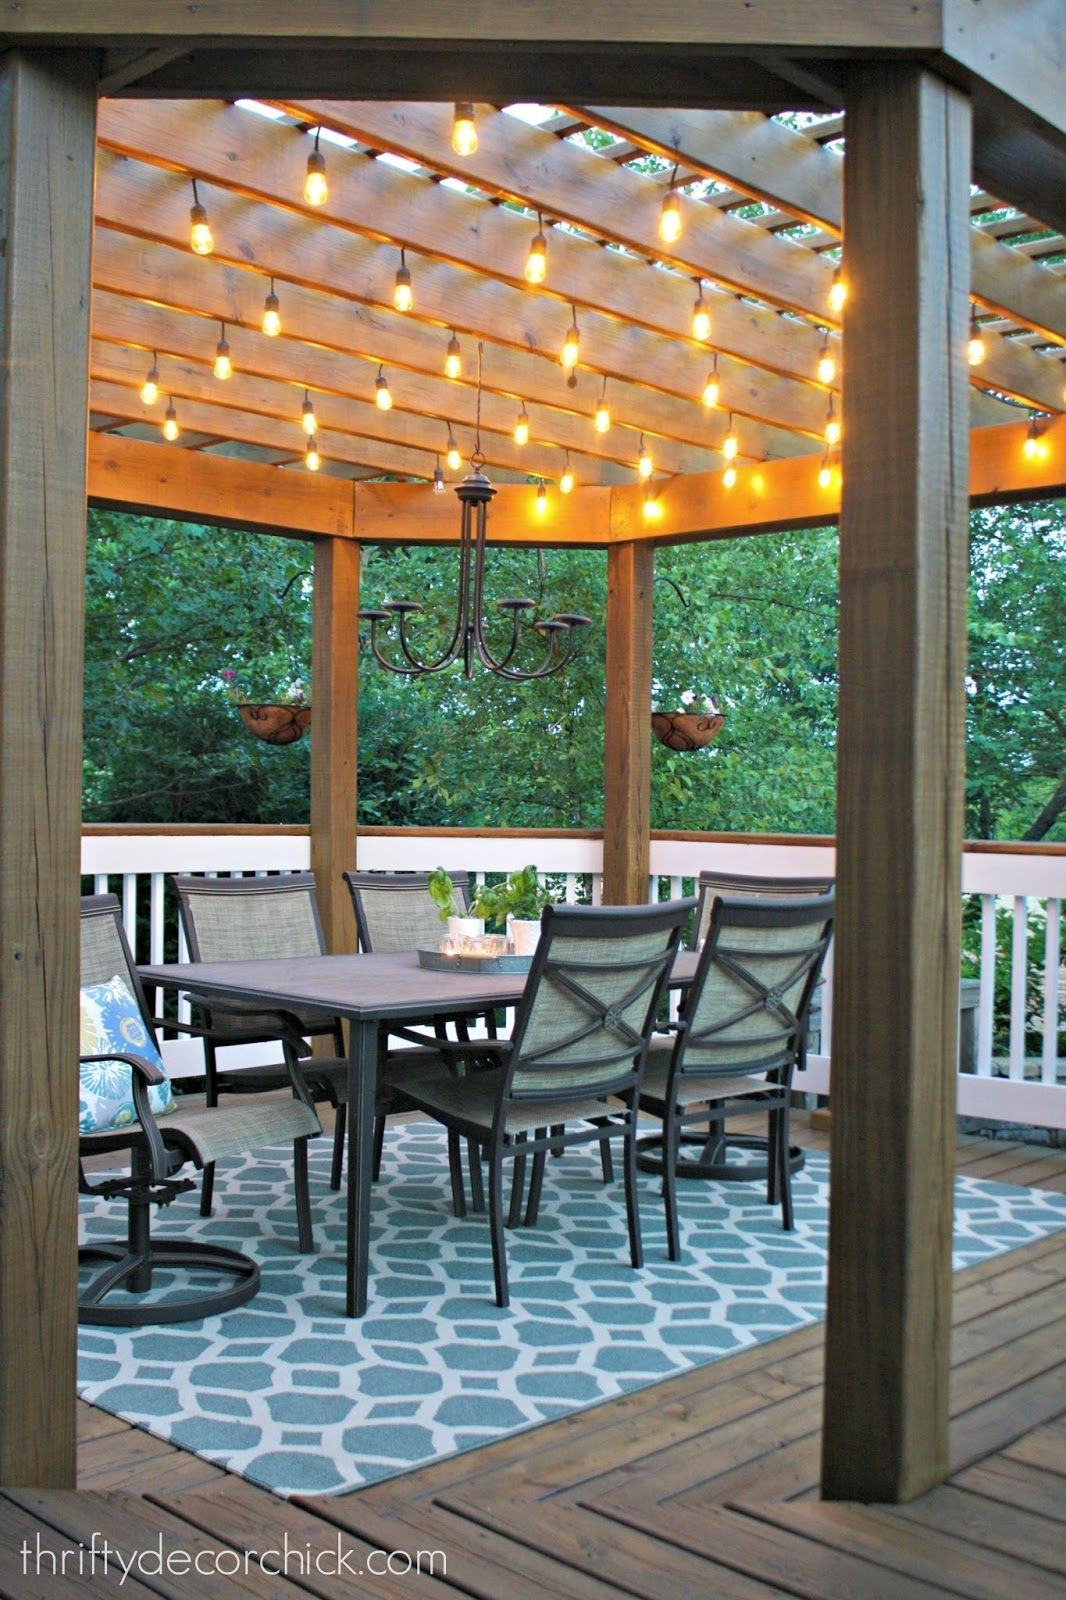 The best outdoor lights - Our Beautiful Outdoor Dining Room In 2019 DIY New Home Remodeling